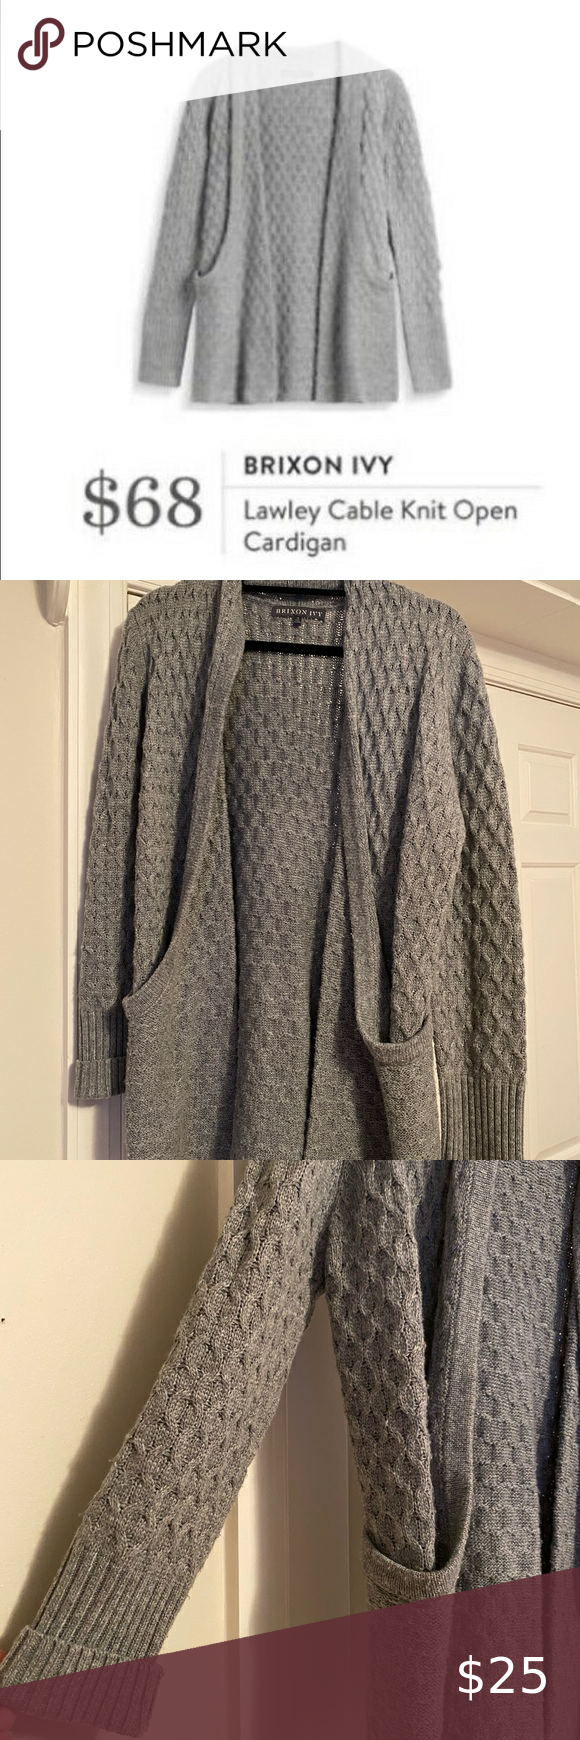 Brixon Ivy Gray Lawley Open Cardigan sweater in 2020 | Open